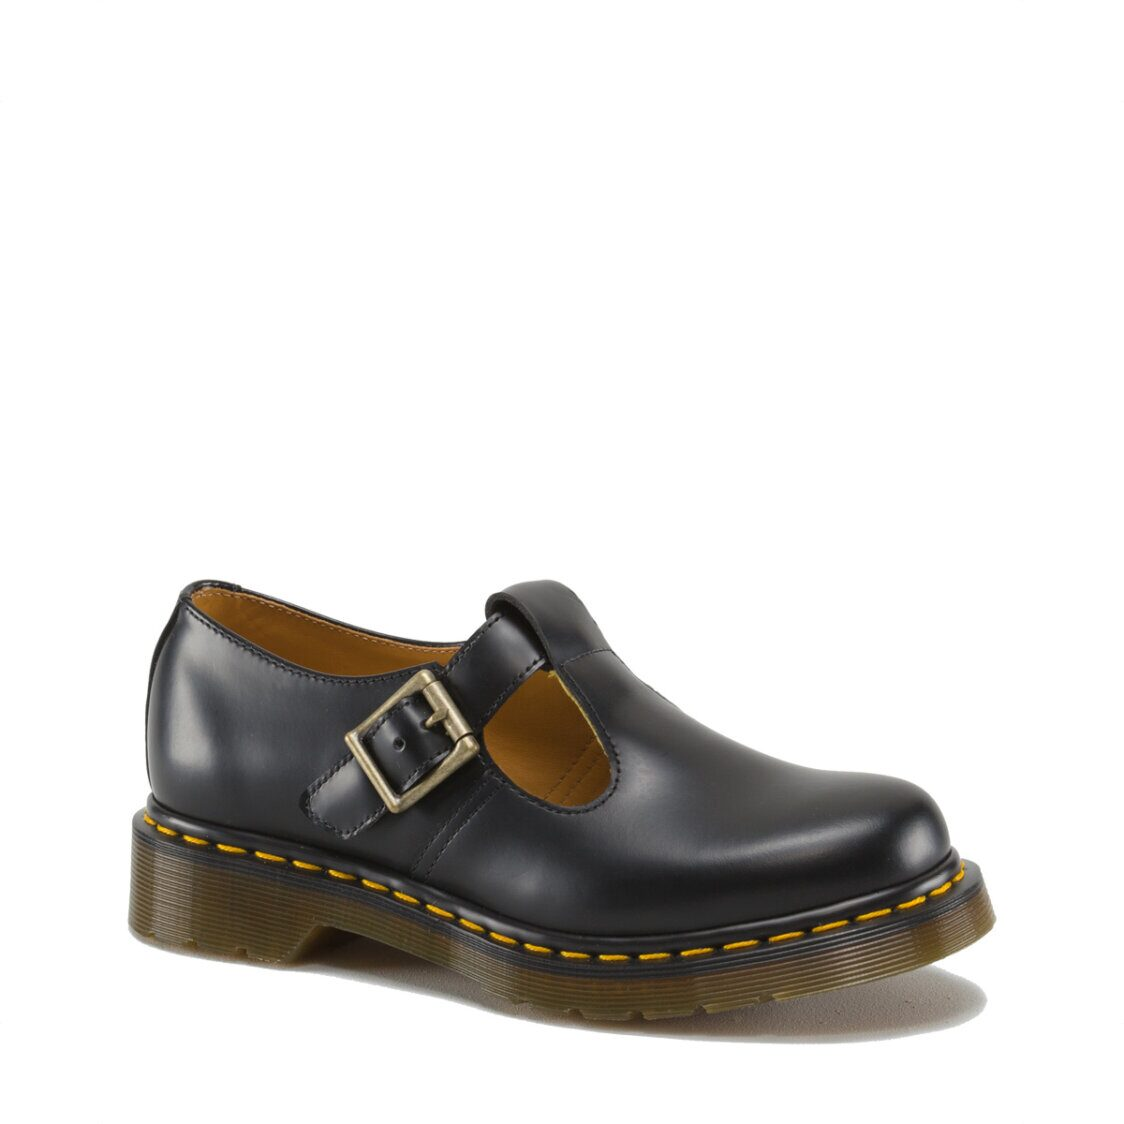 Dr Marten Polley Smooth Leather Mary Janes